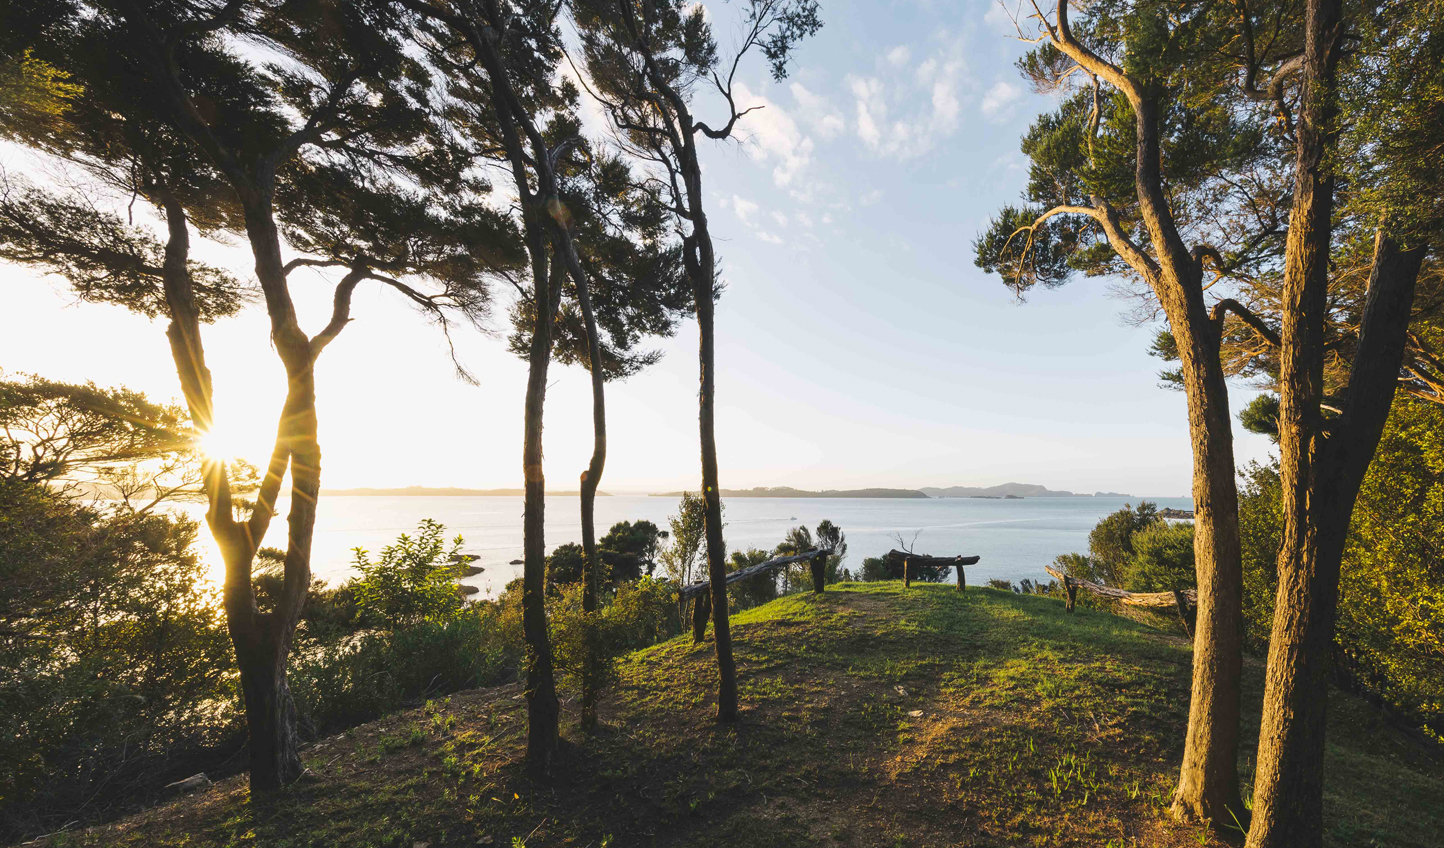 Discover secluded spots with romantic views